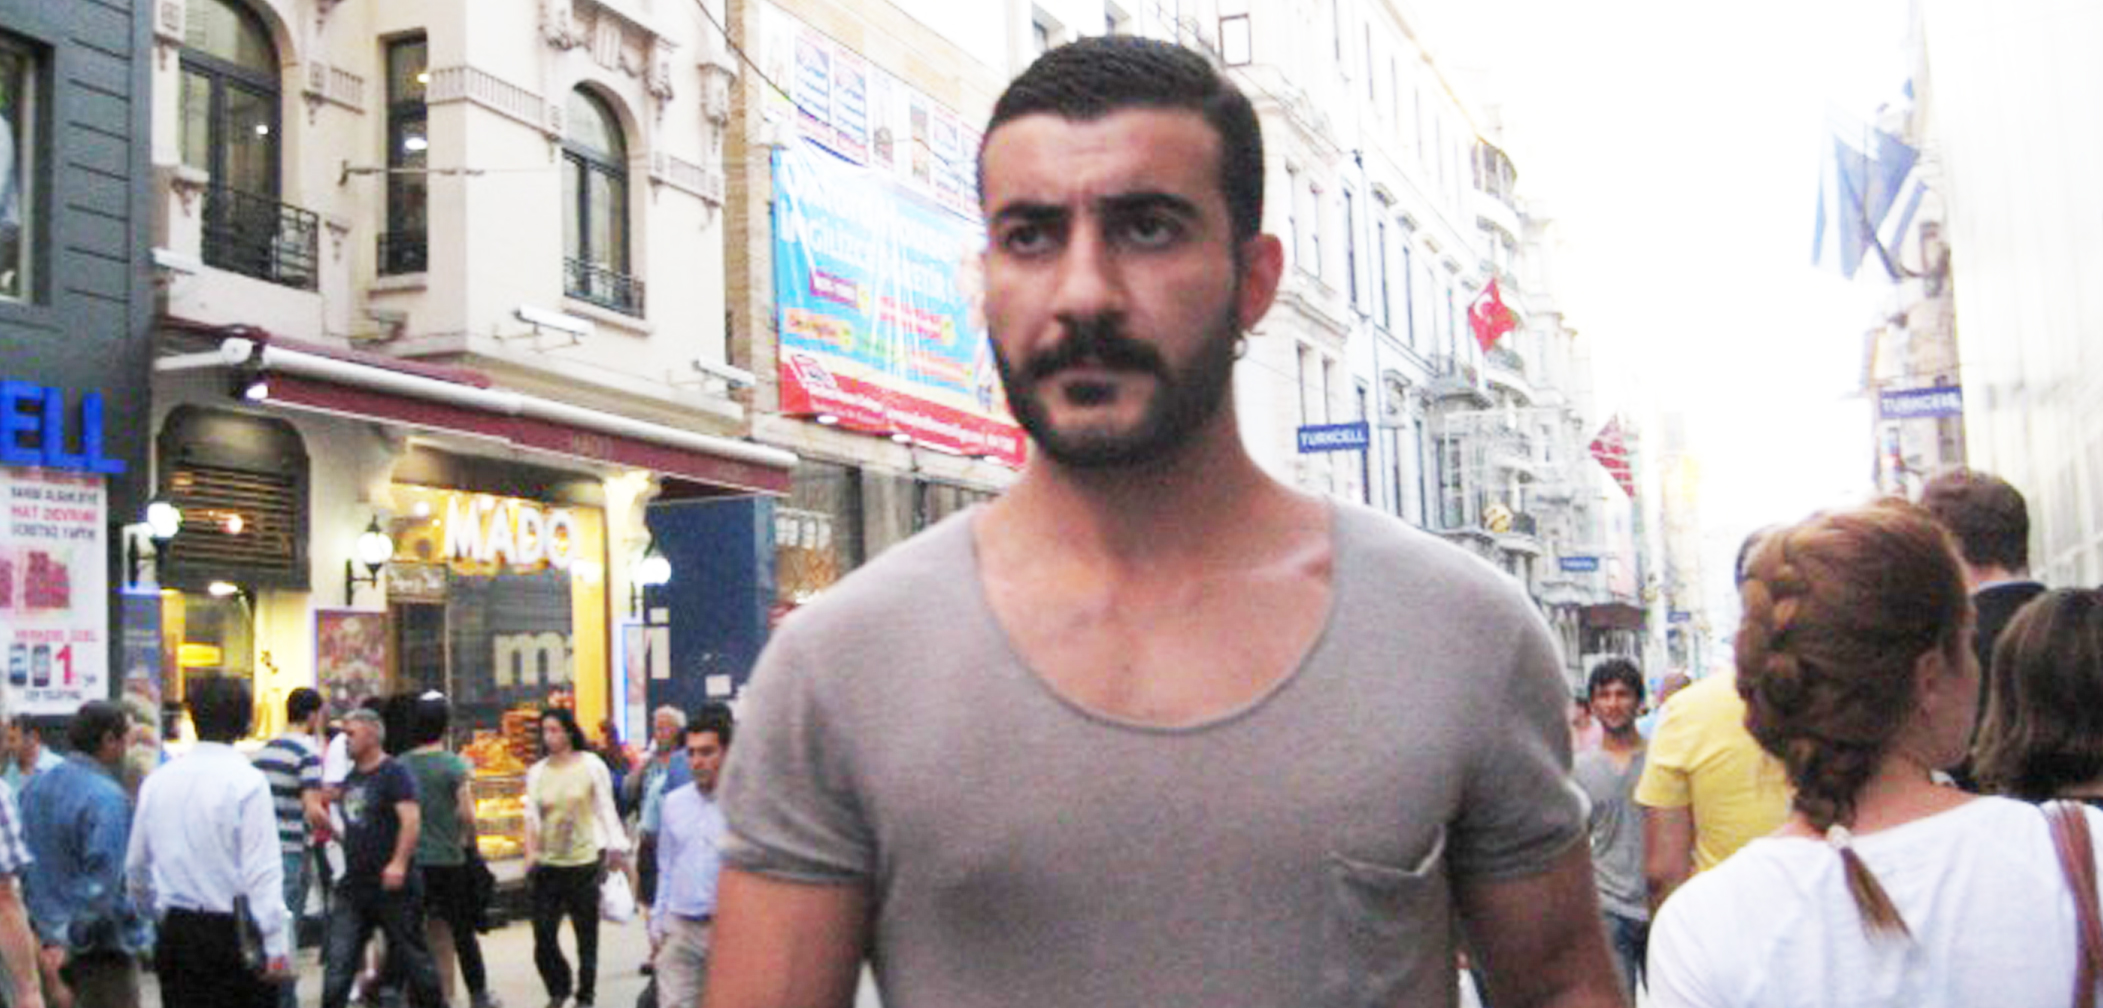 gay tourists targeted in turkey 1